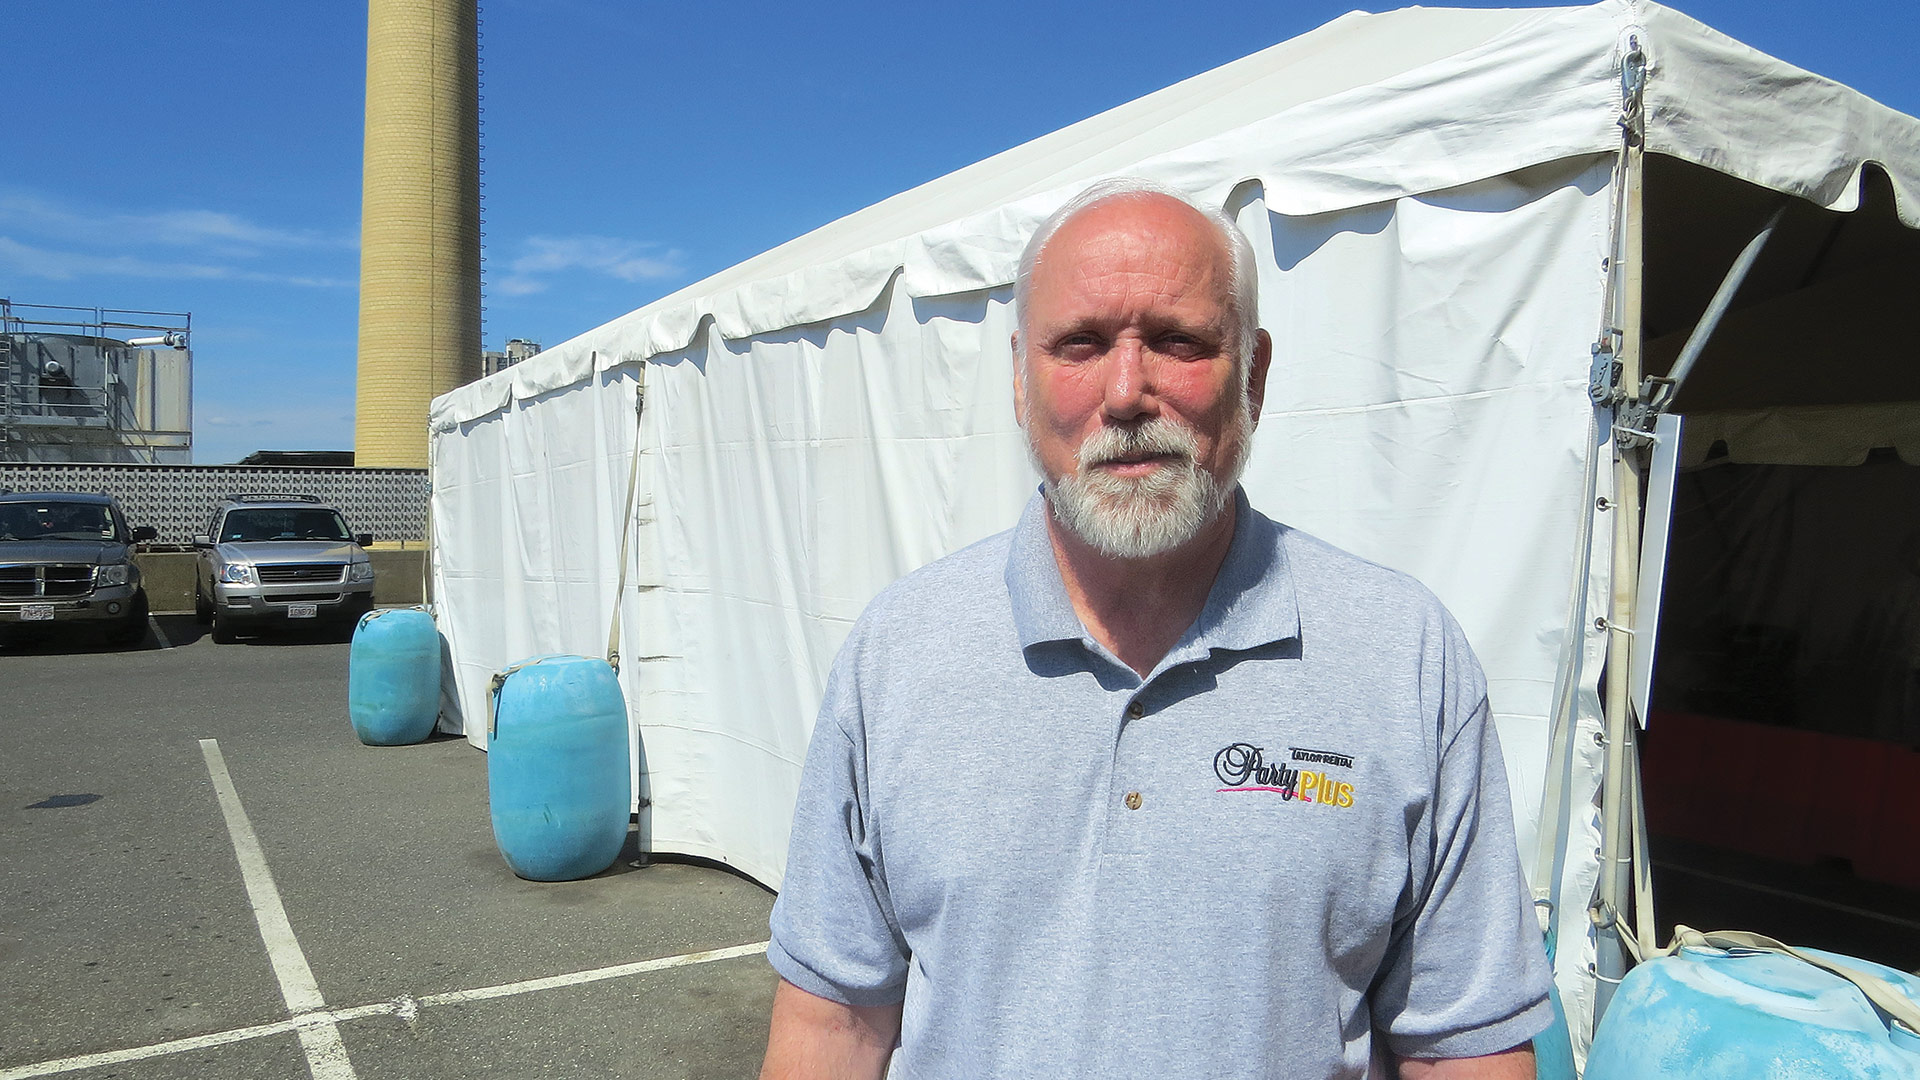 Greg Jerome stands by one of the tents